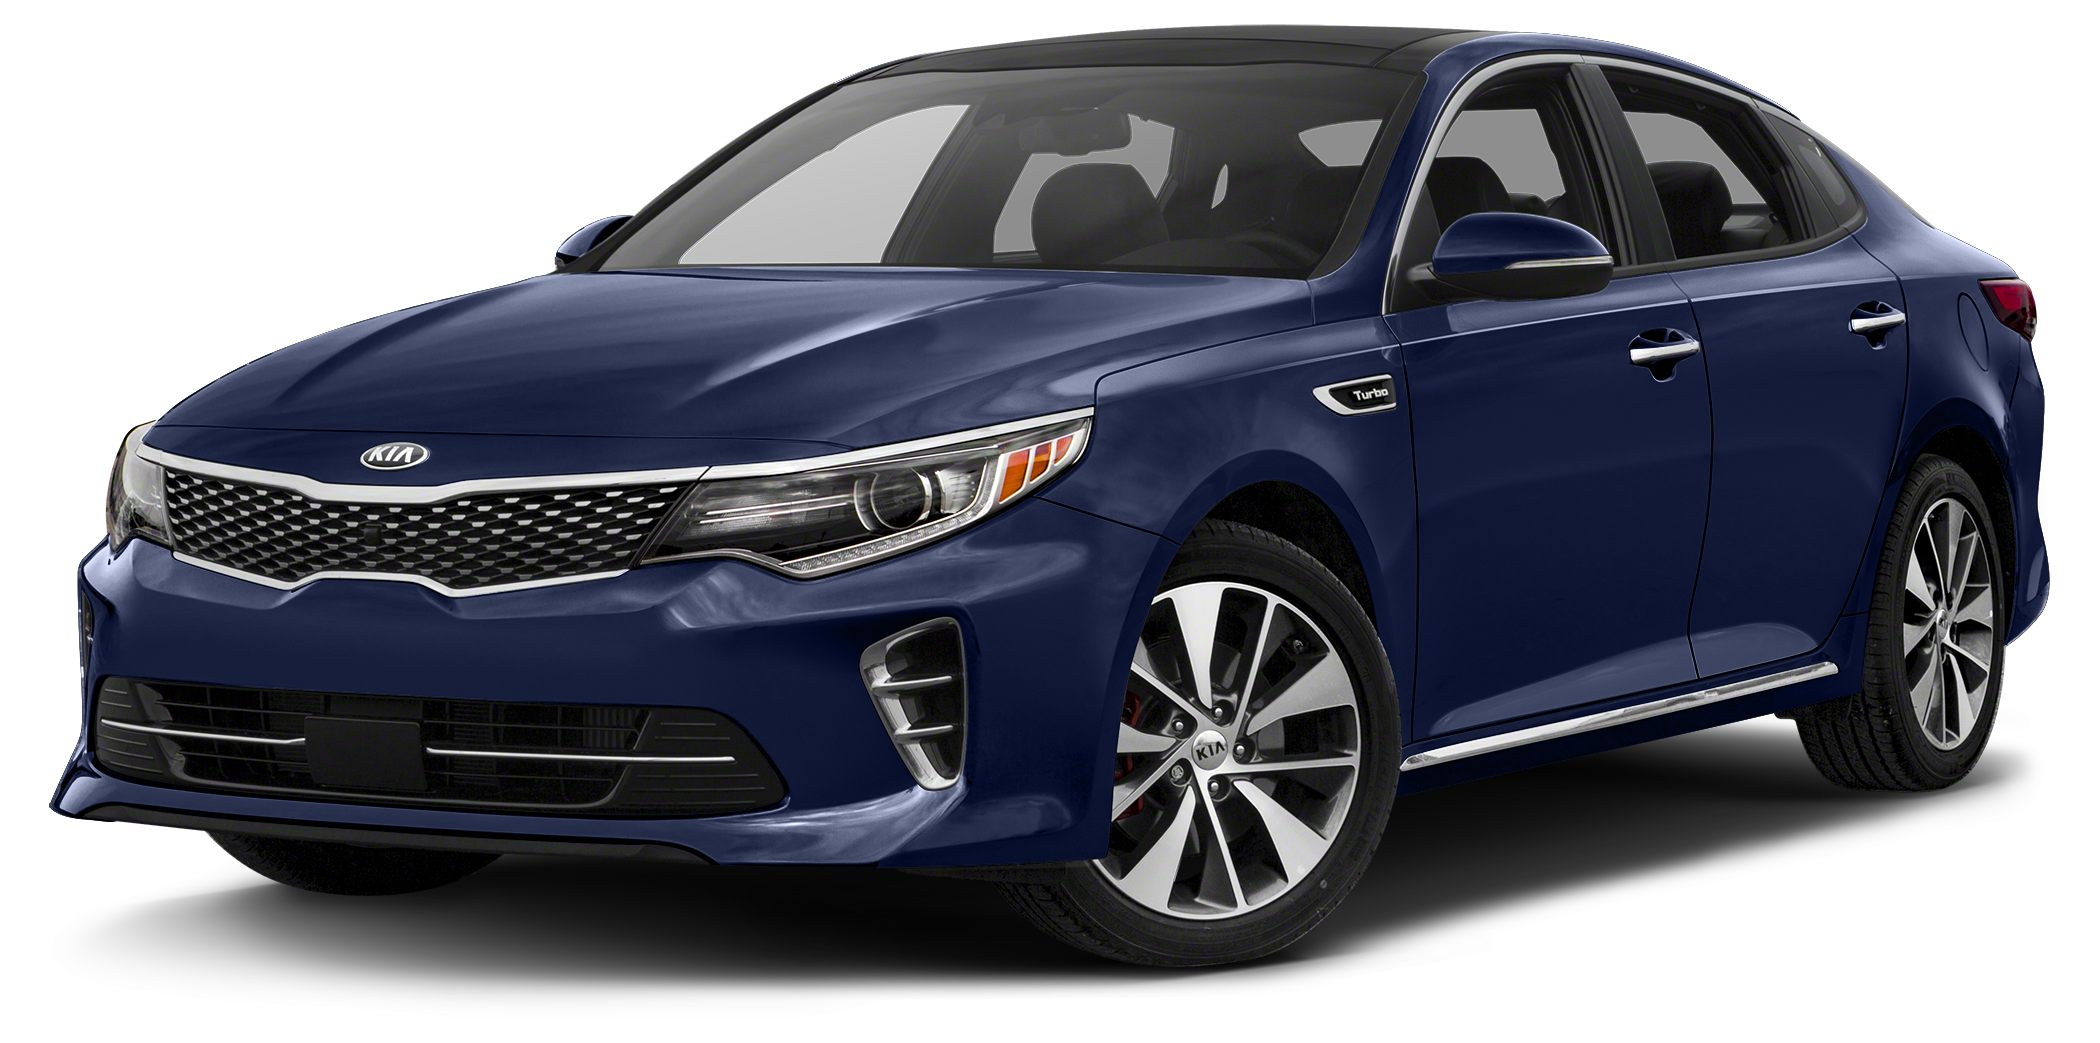 2017 Kia Optima SX Turbo Miles 13Color Horizon Blue Stock K16670 VIN 5XXGW4L2XHG136891